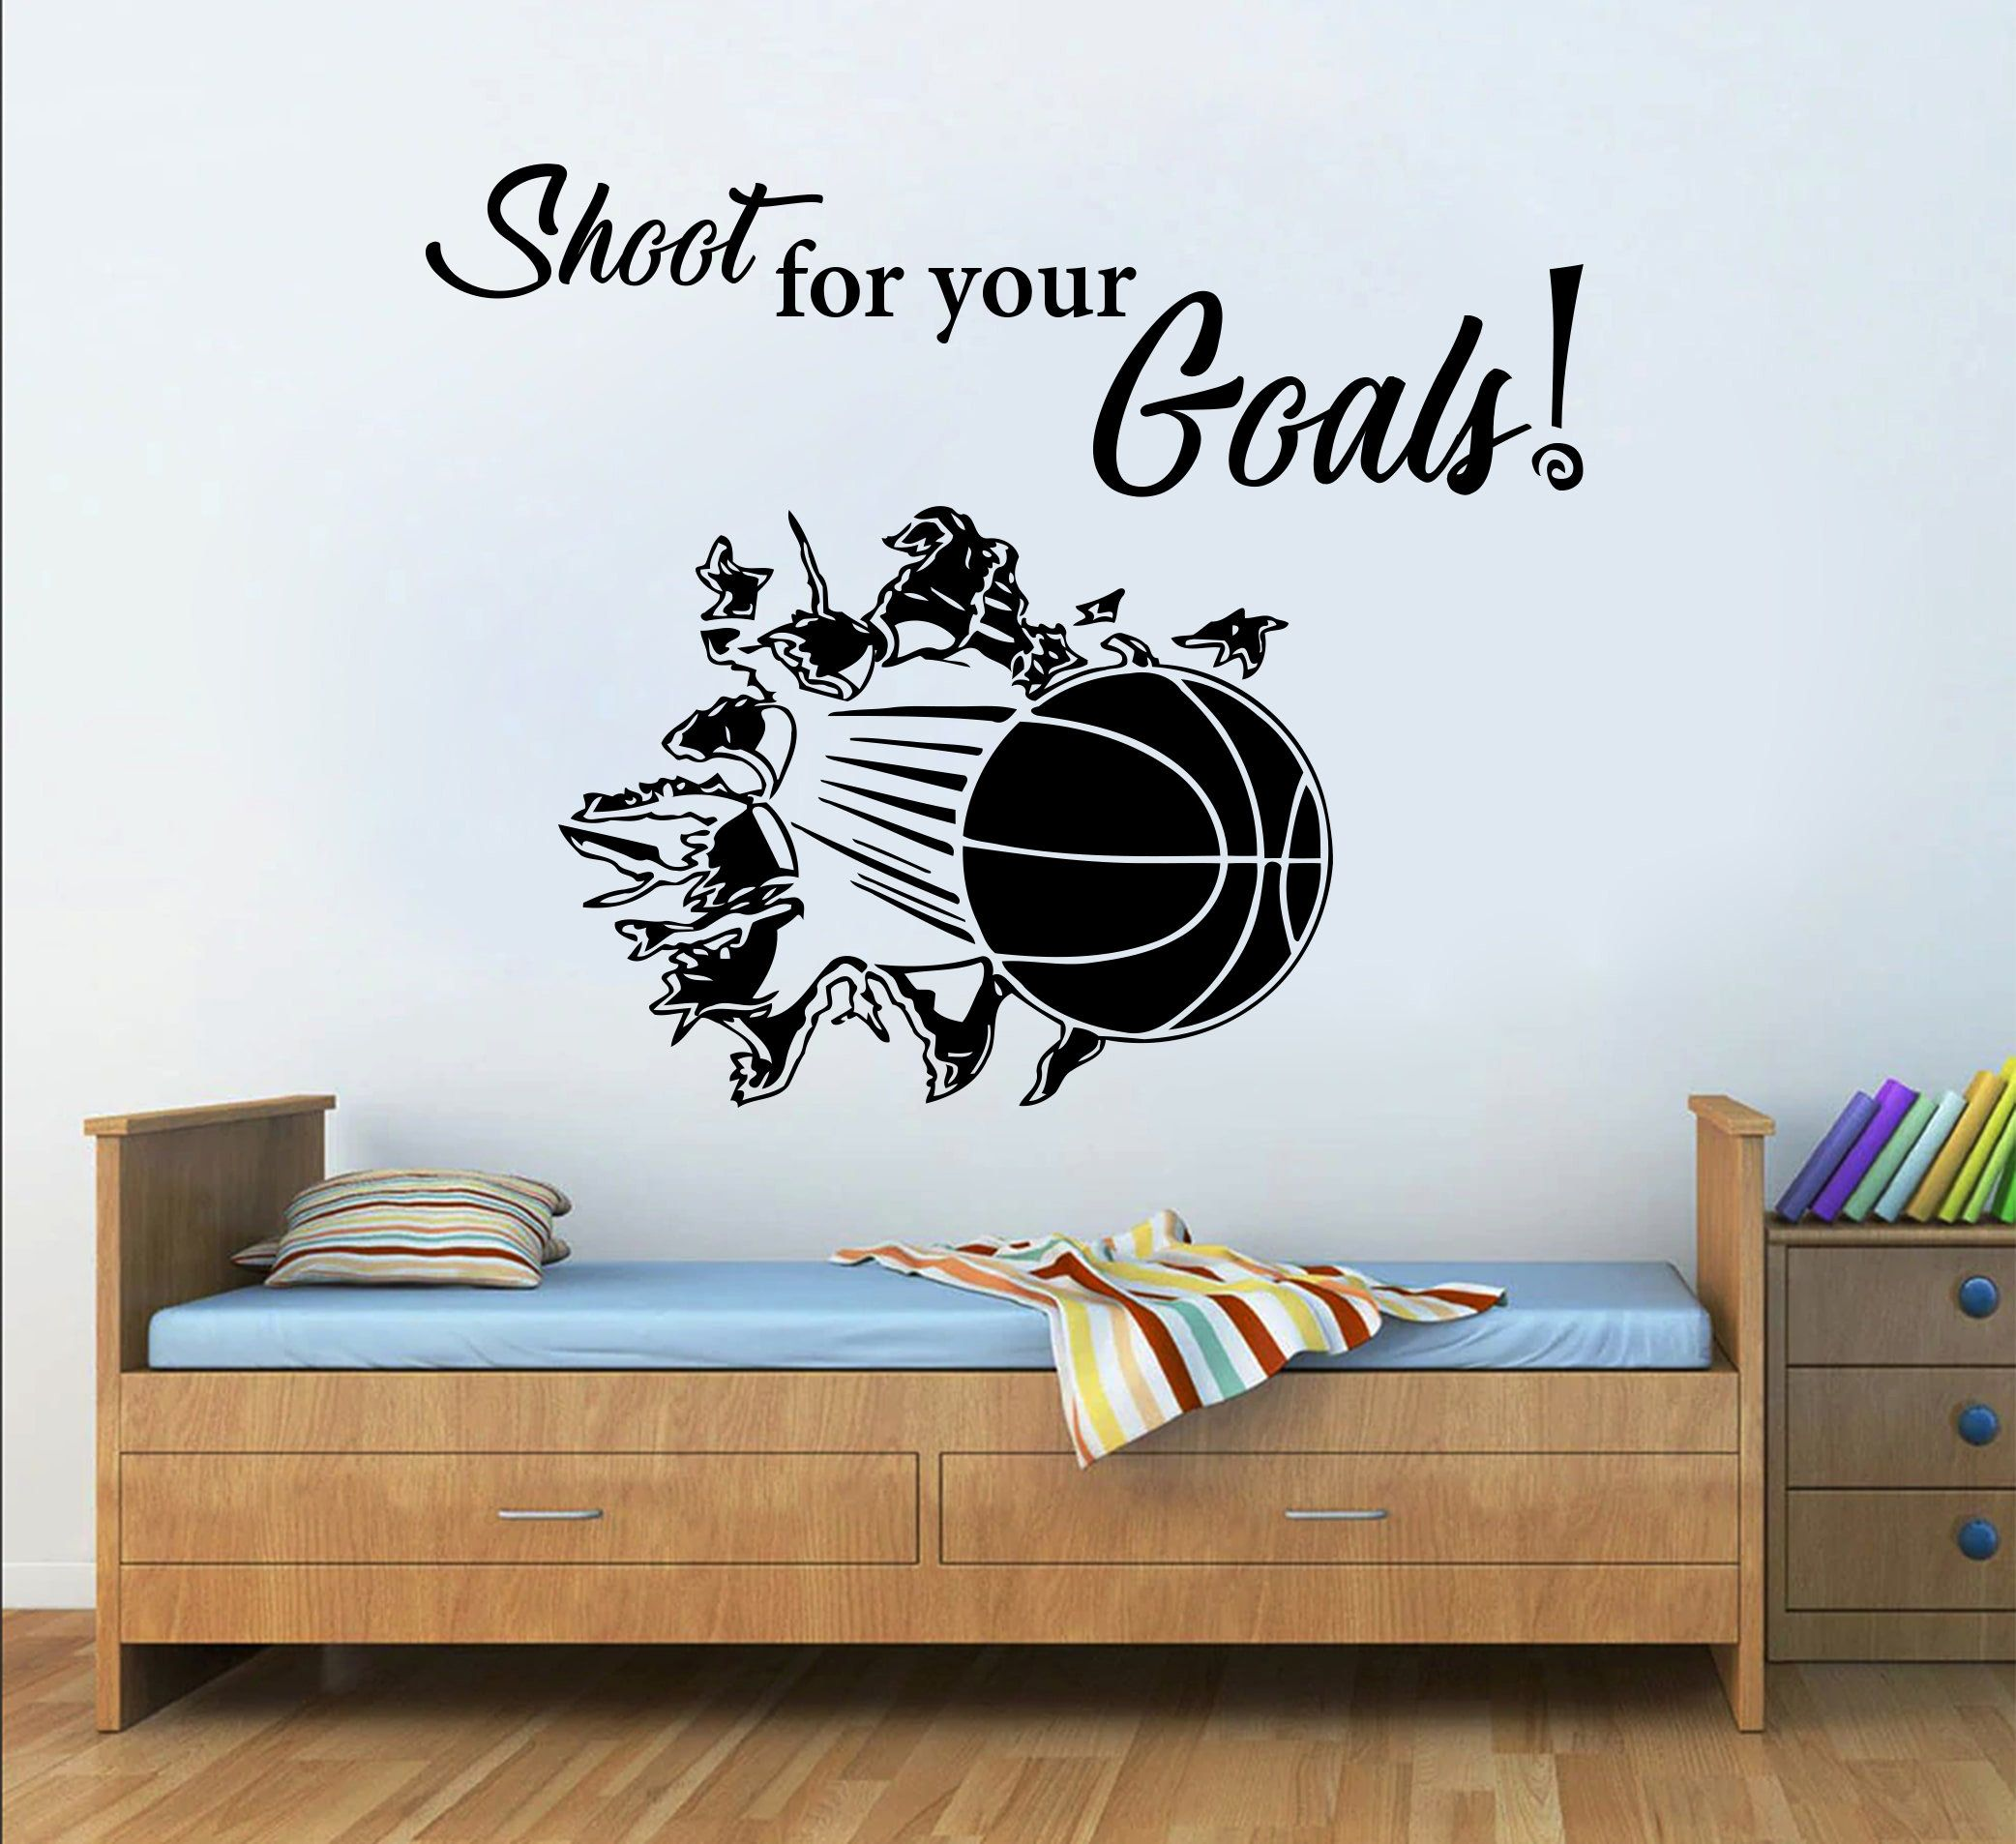 Basketball Custom Quote Wall Decal Sport Vinyl Nba Boys Basket Etsy Sports Wall Decals Kids Room Wall Stickers Wall Quotes Decals